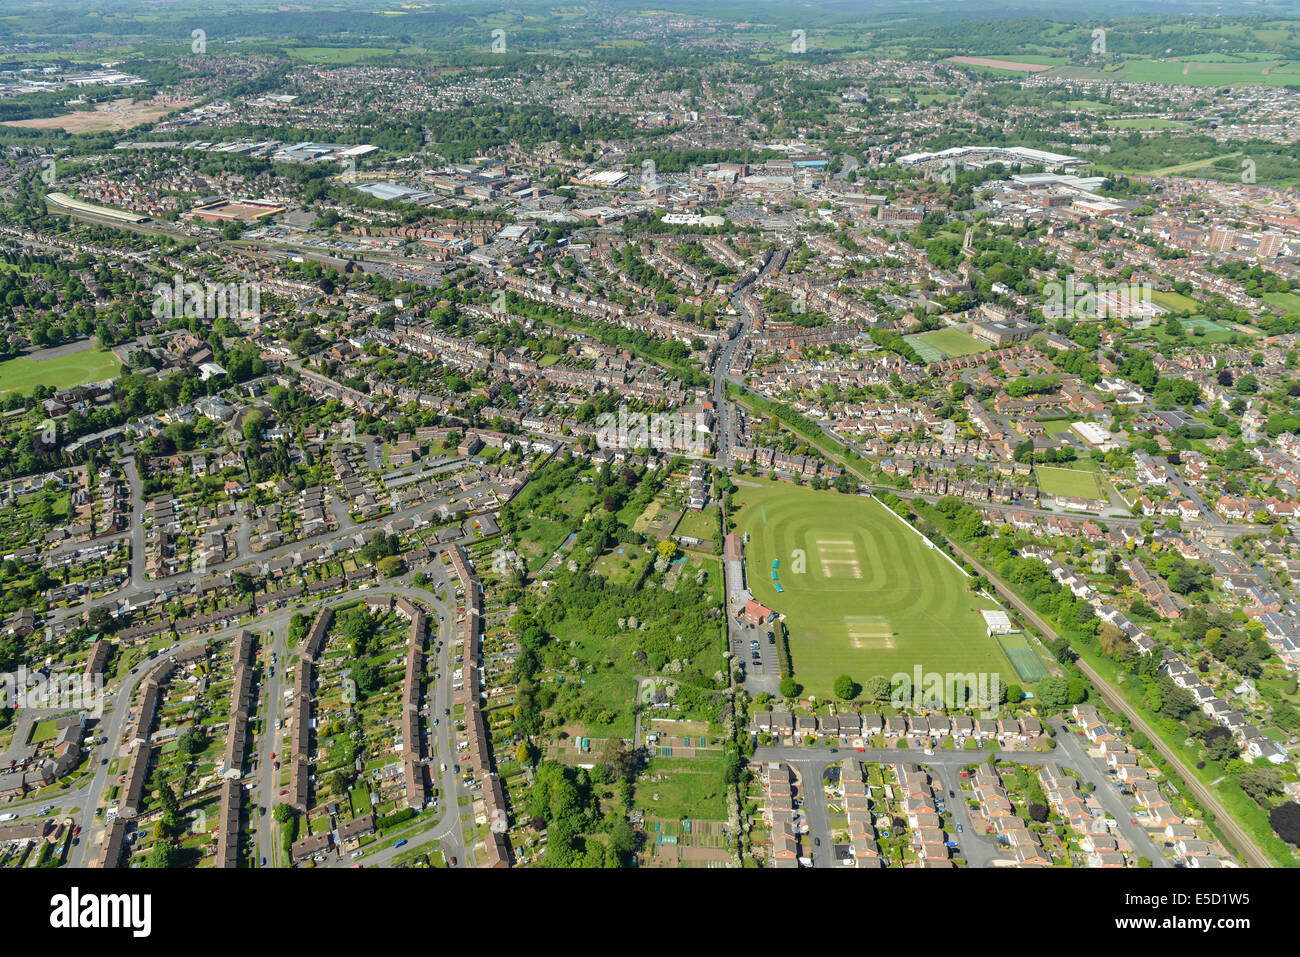 An aerial view of Kidderminster with the town centre visible. - Stock Image